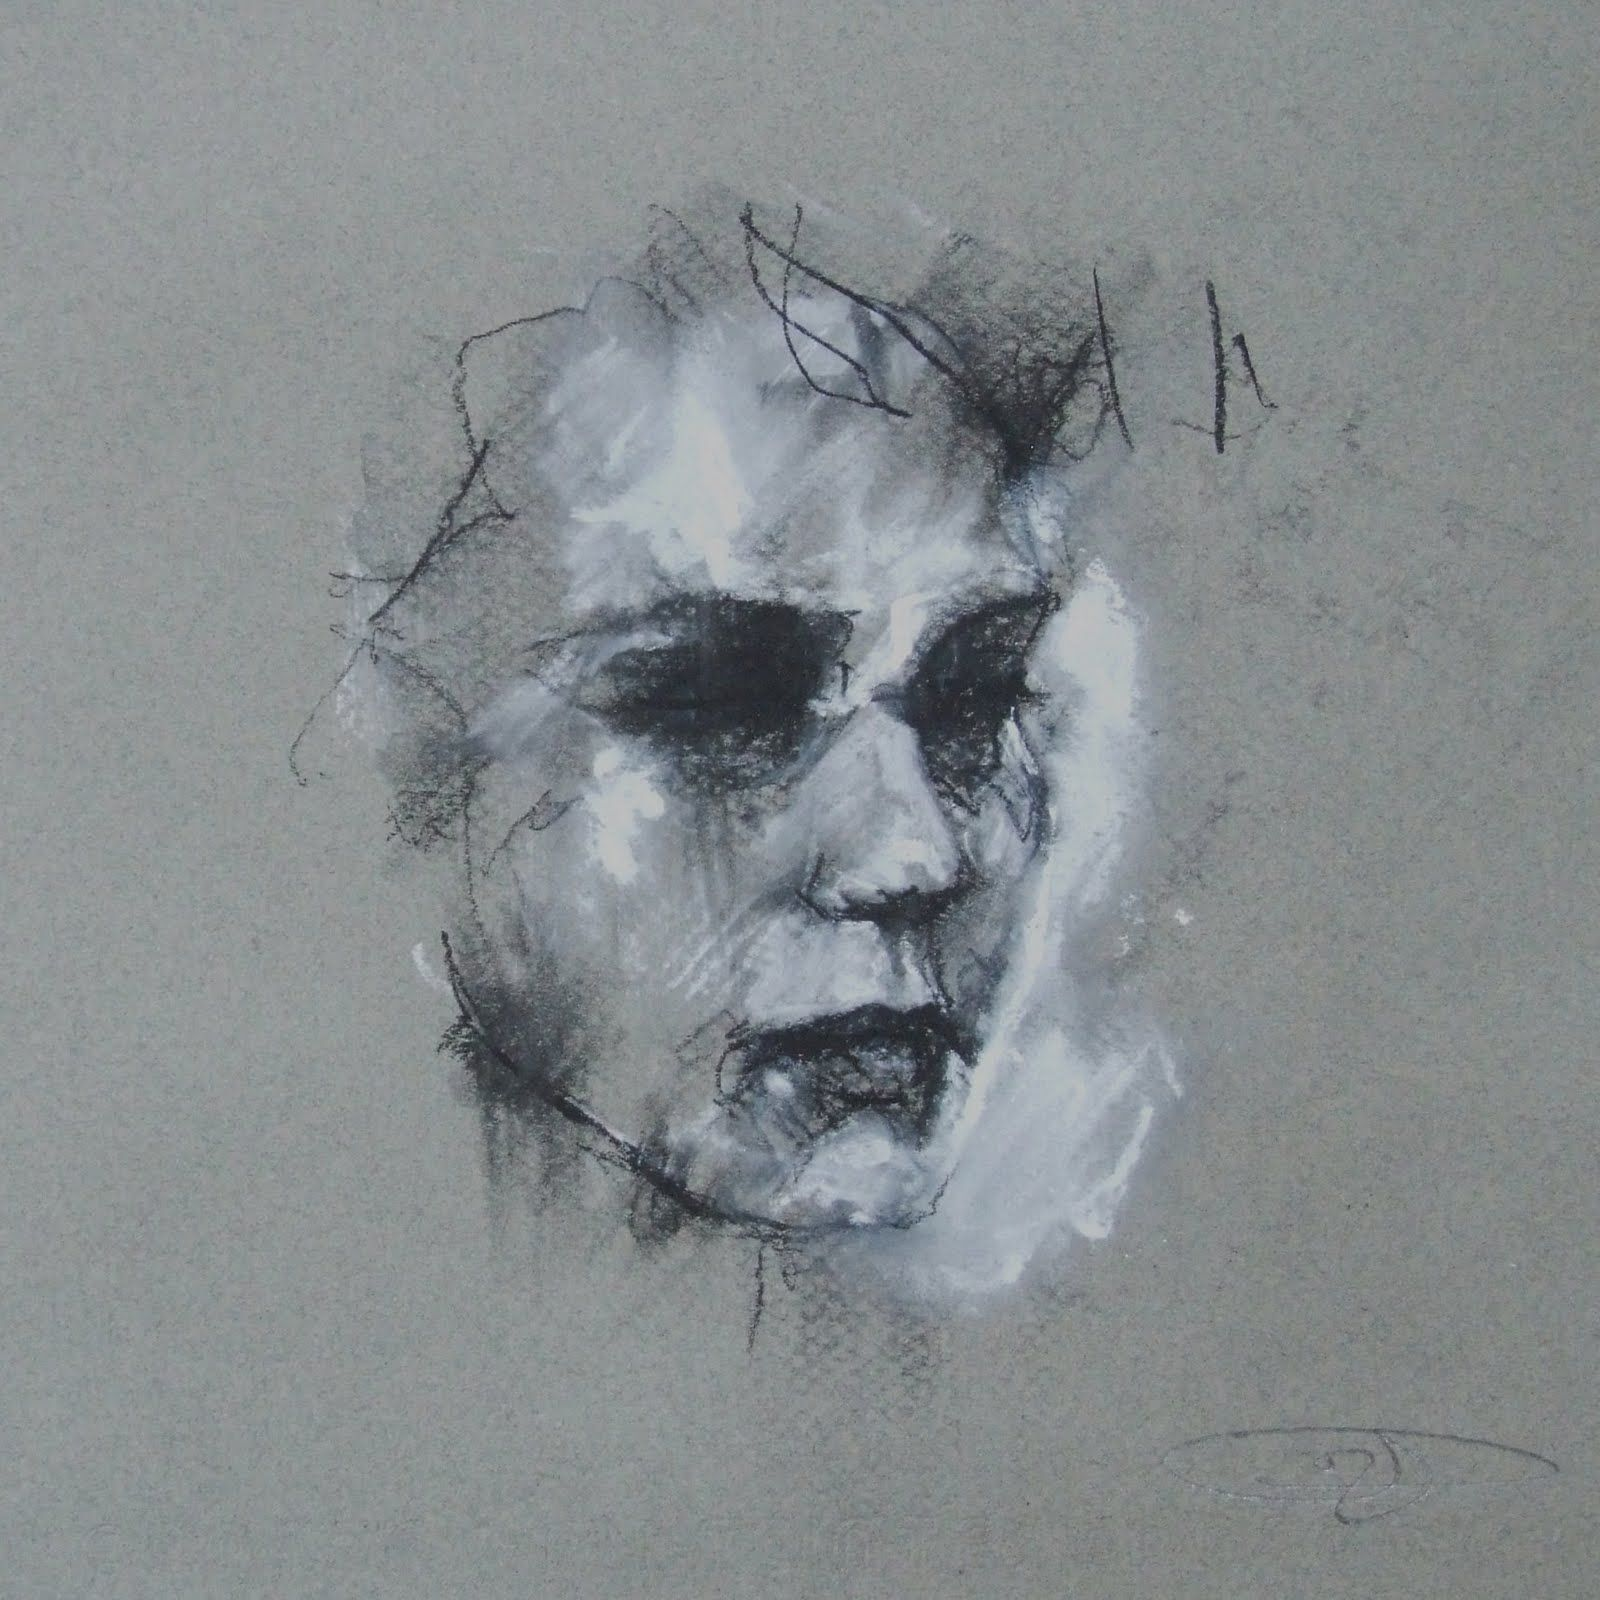 Guy denning art guy dennings images with charcoal some links wikipedia guy denning